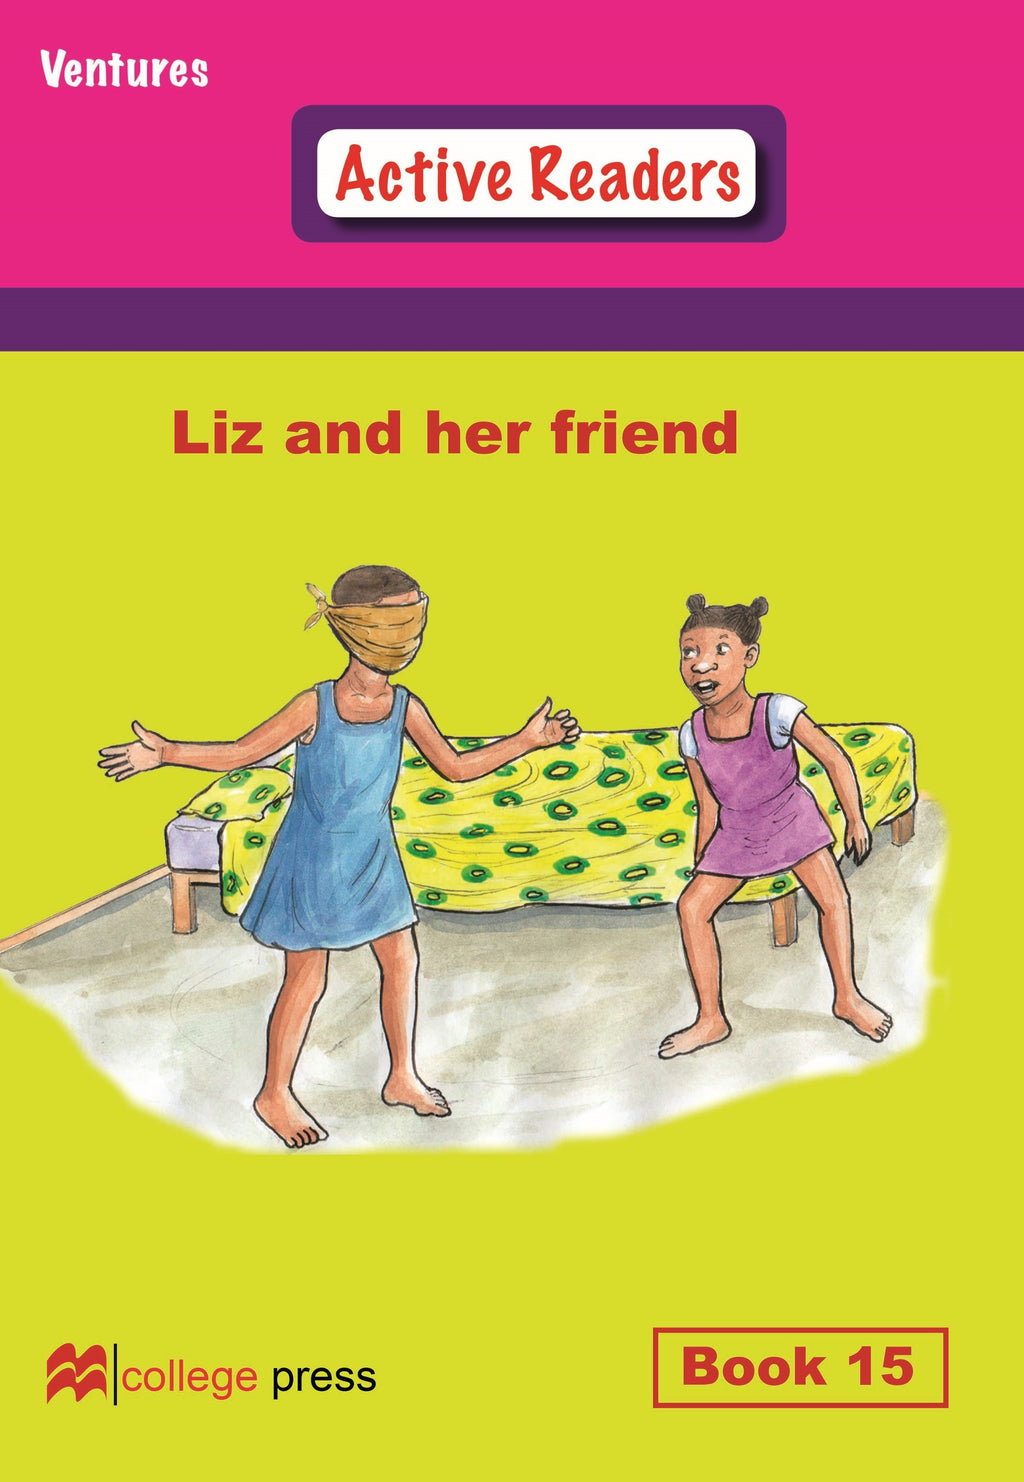 Ventures active readers (Controlled English Reading Scheme) Liz and her friend Book 15